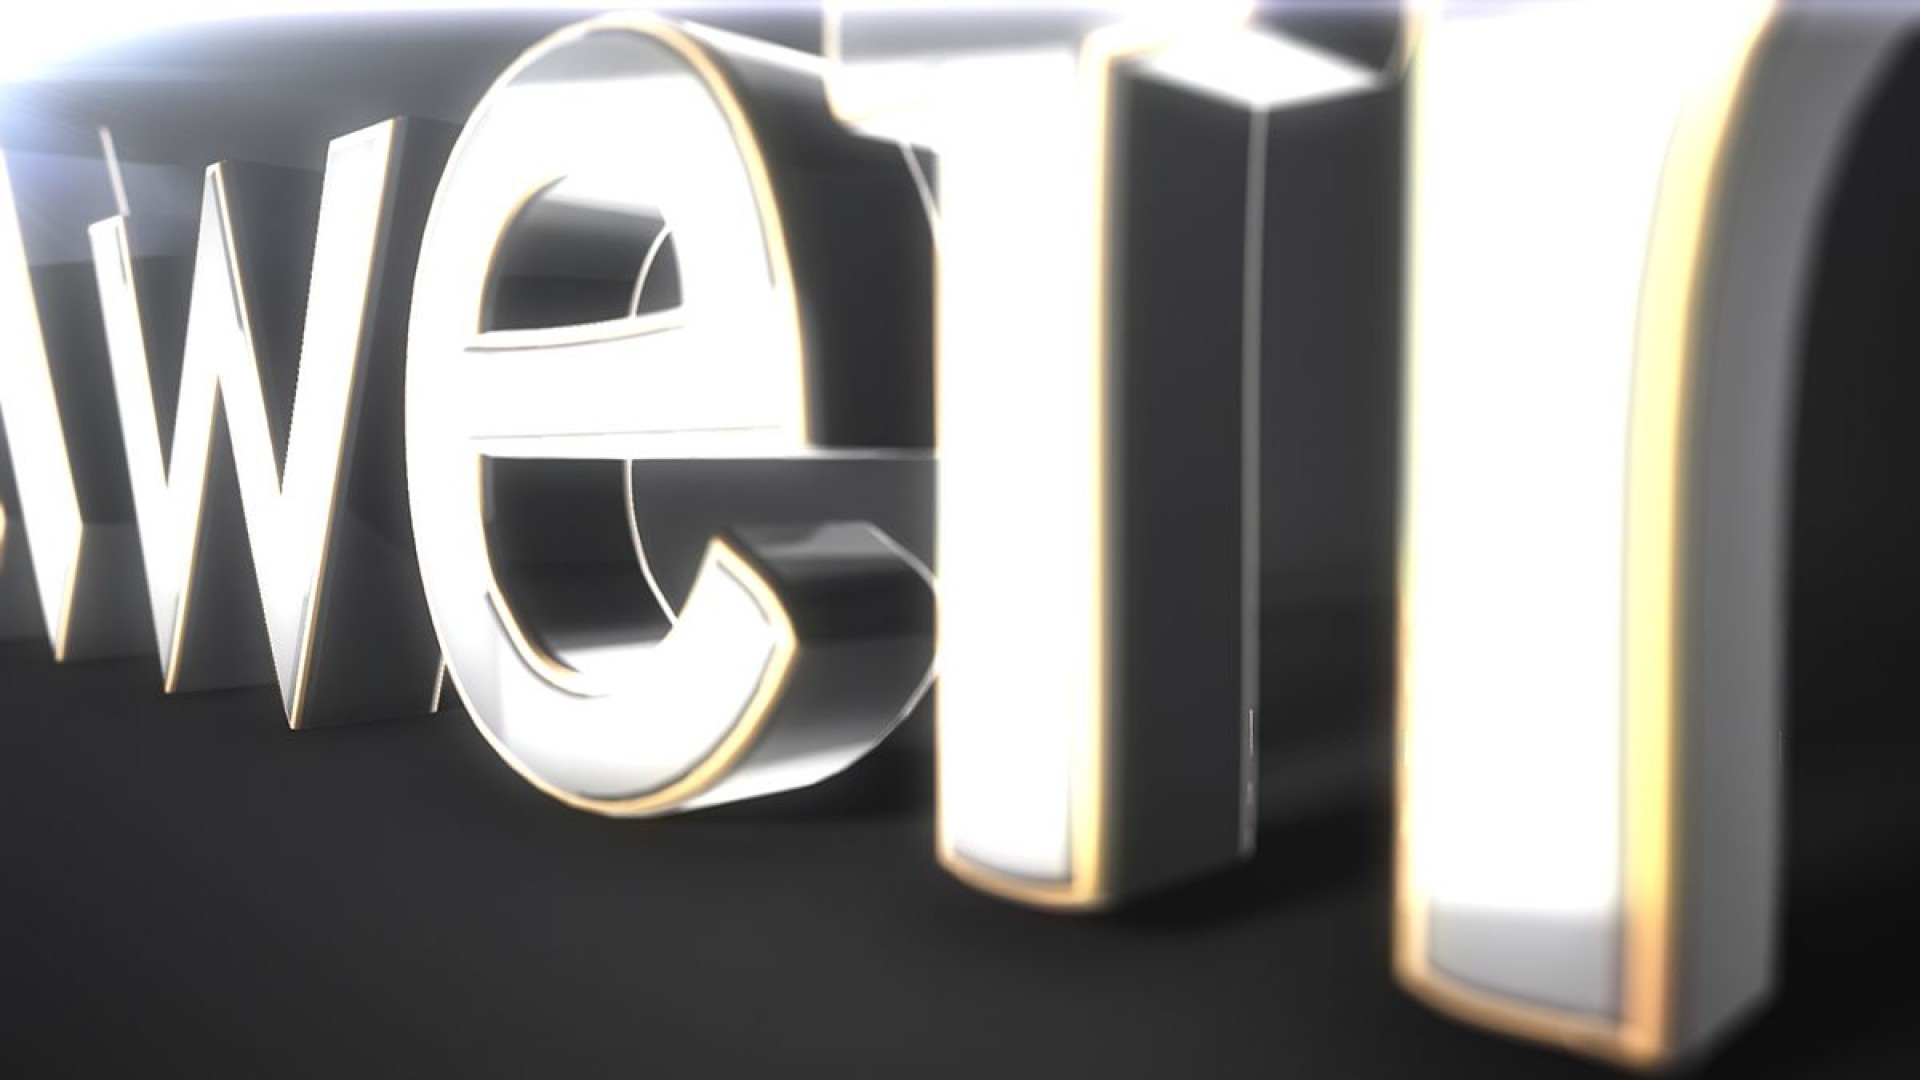 002 Staggering Free After Effect Template  3d Logo Animation High Resolution - V2 Download1920